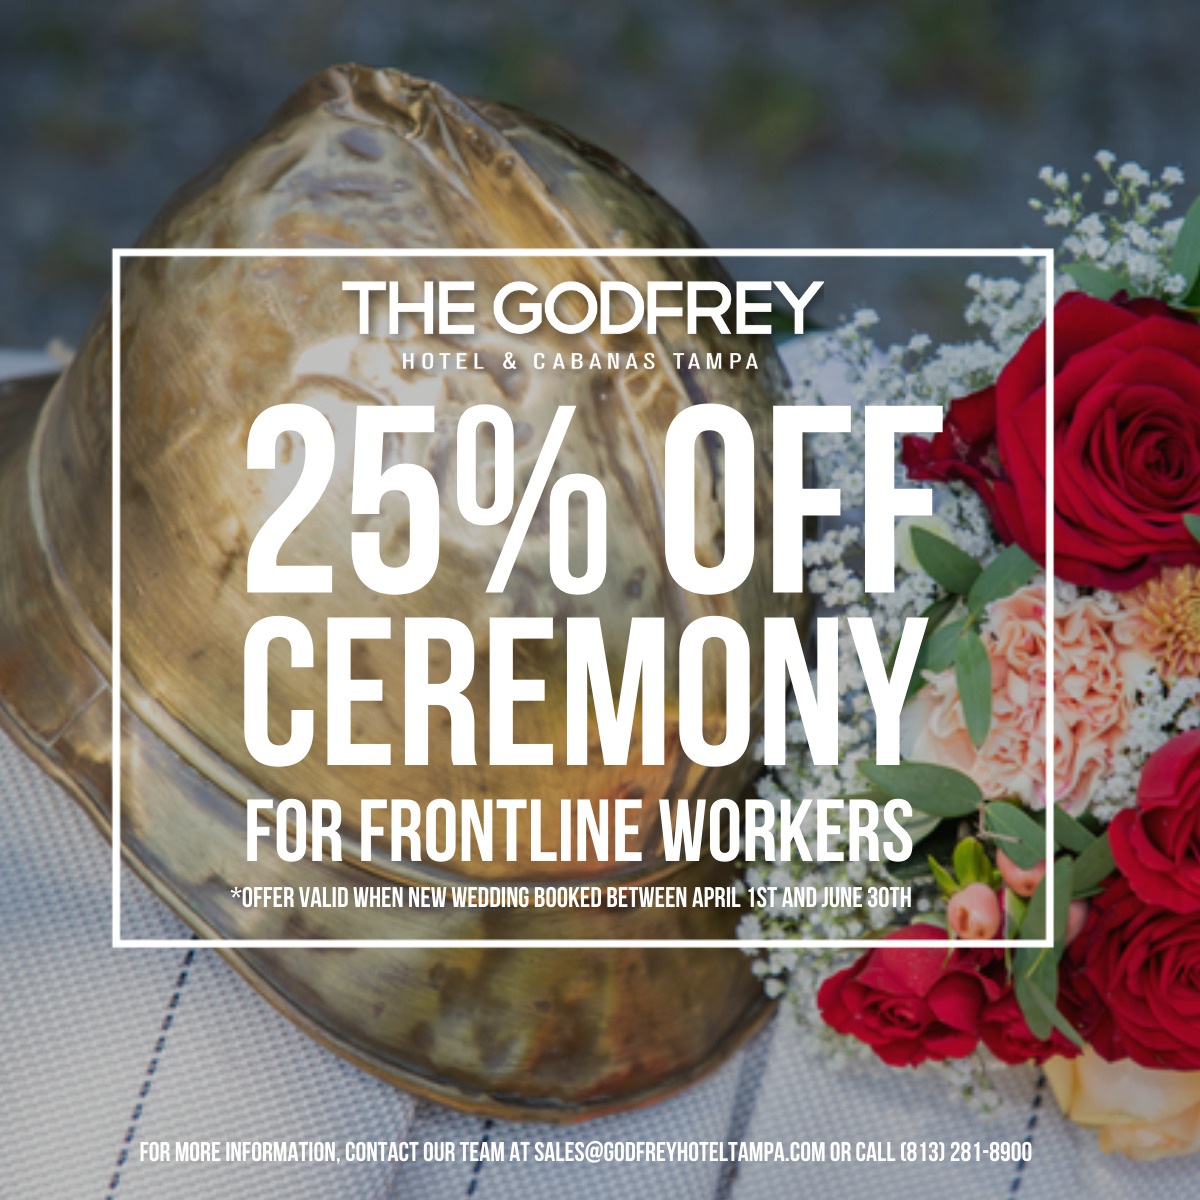 Godfrey Hotel & Cabanas Gives Back to Frontline Workers in the Spirit of Love